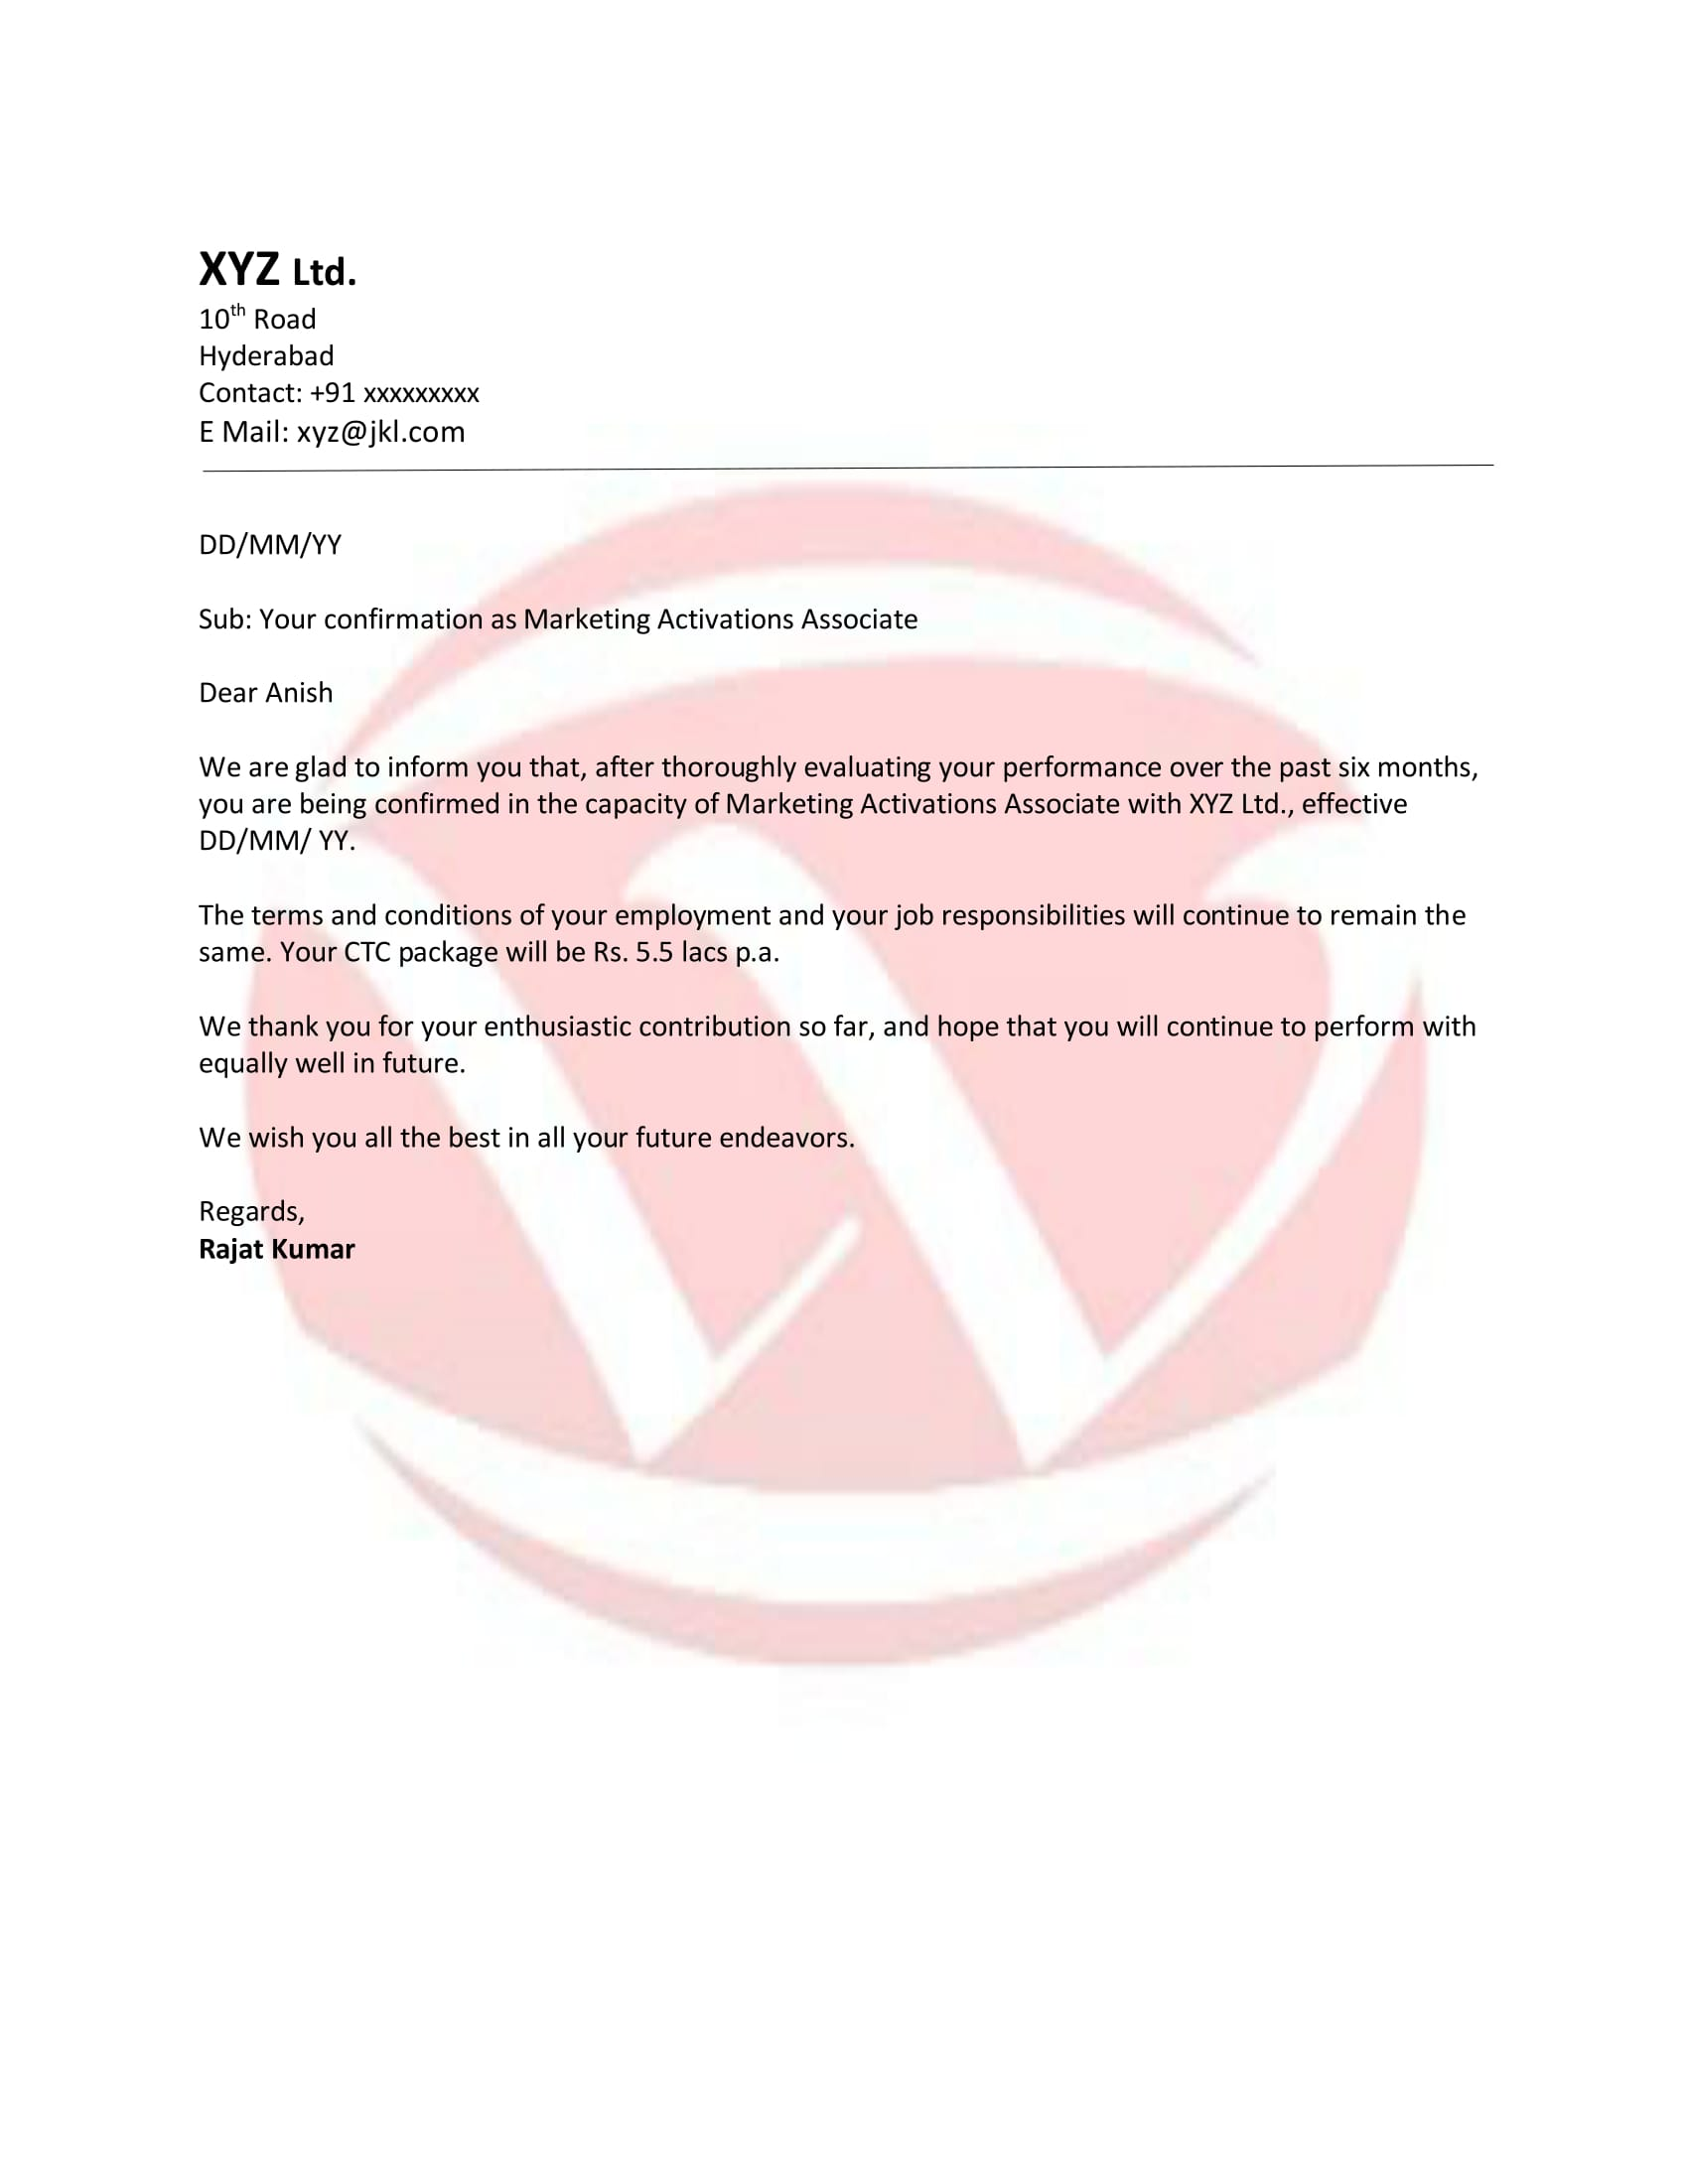 Confirmation sample letter format download letter format templates confirmation sample letter altavistaventures Gallery